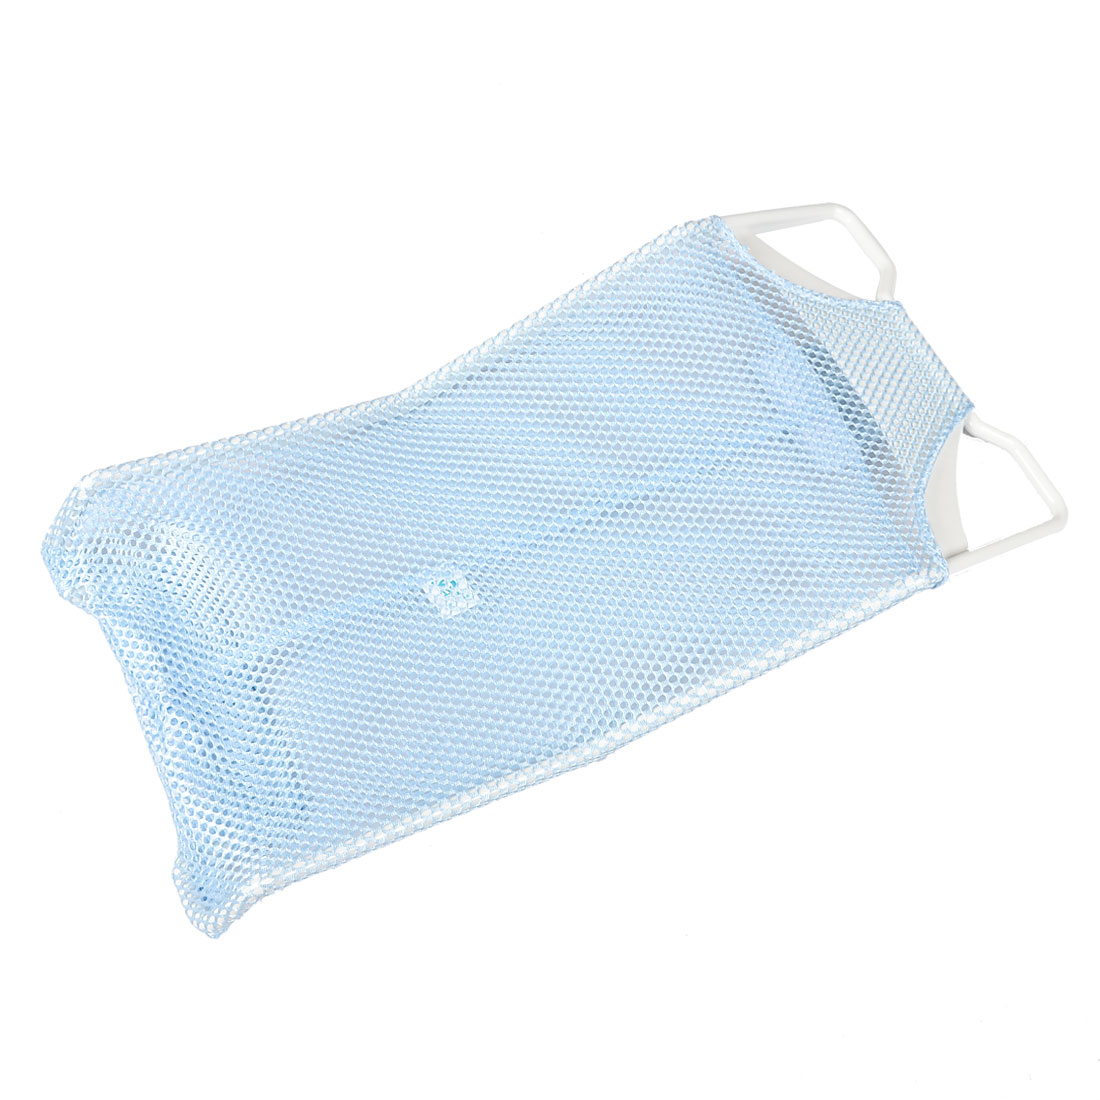 Household Plastic Frame Light Blue Meshy Infant Baby Bathing Net Bed